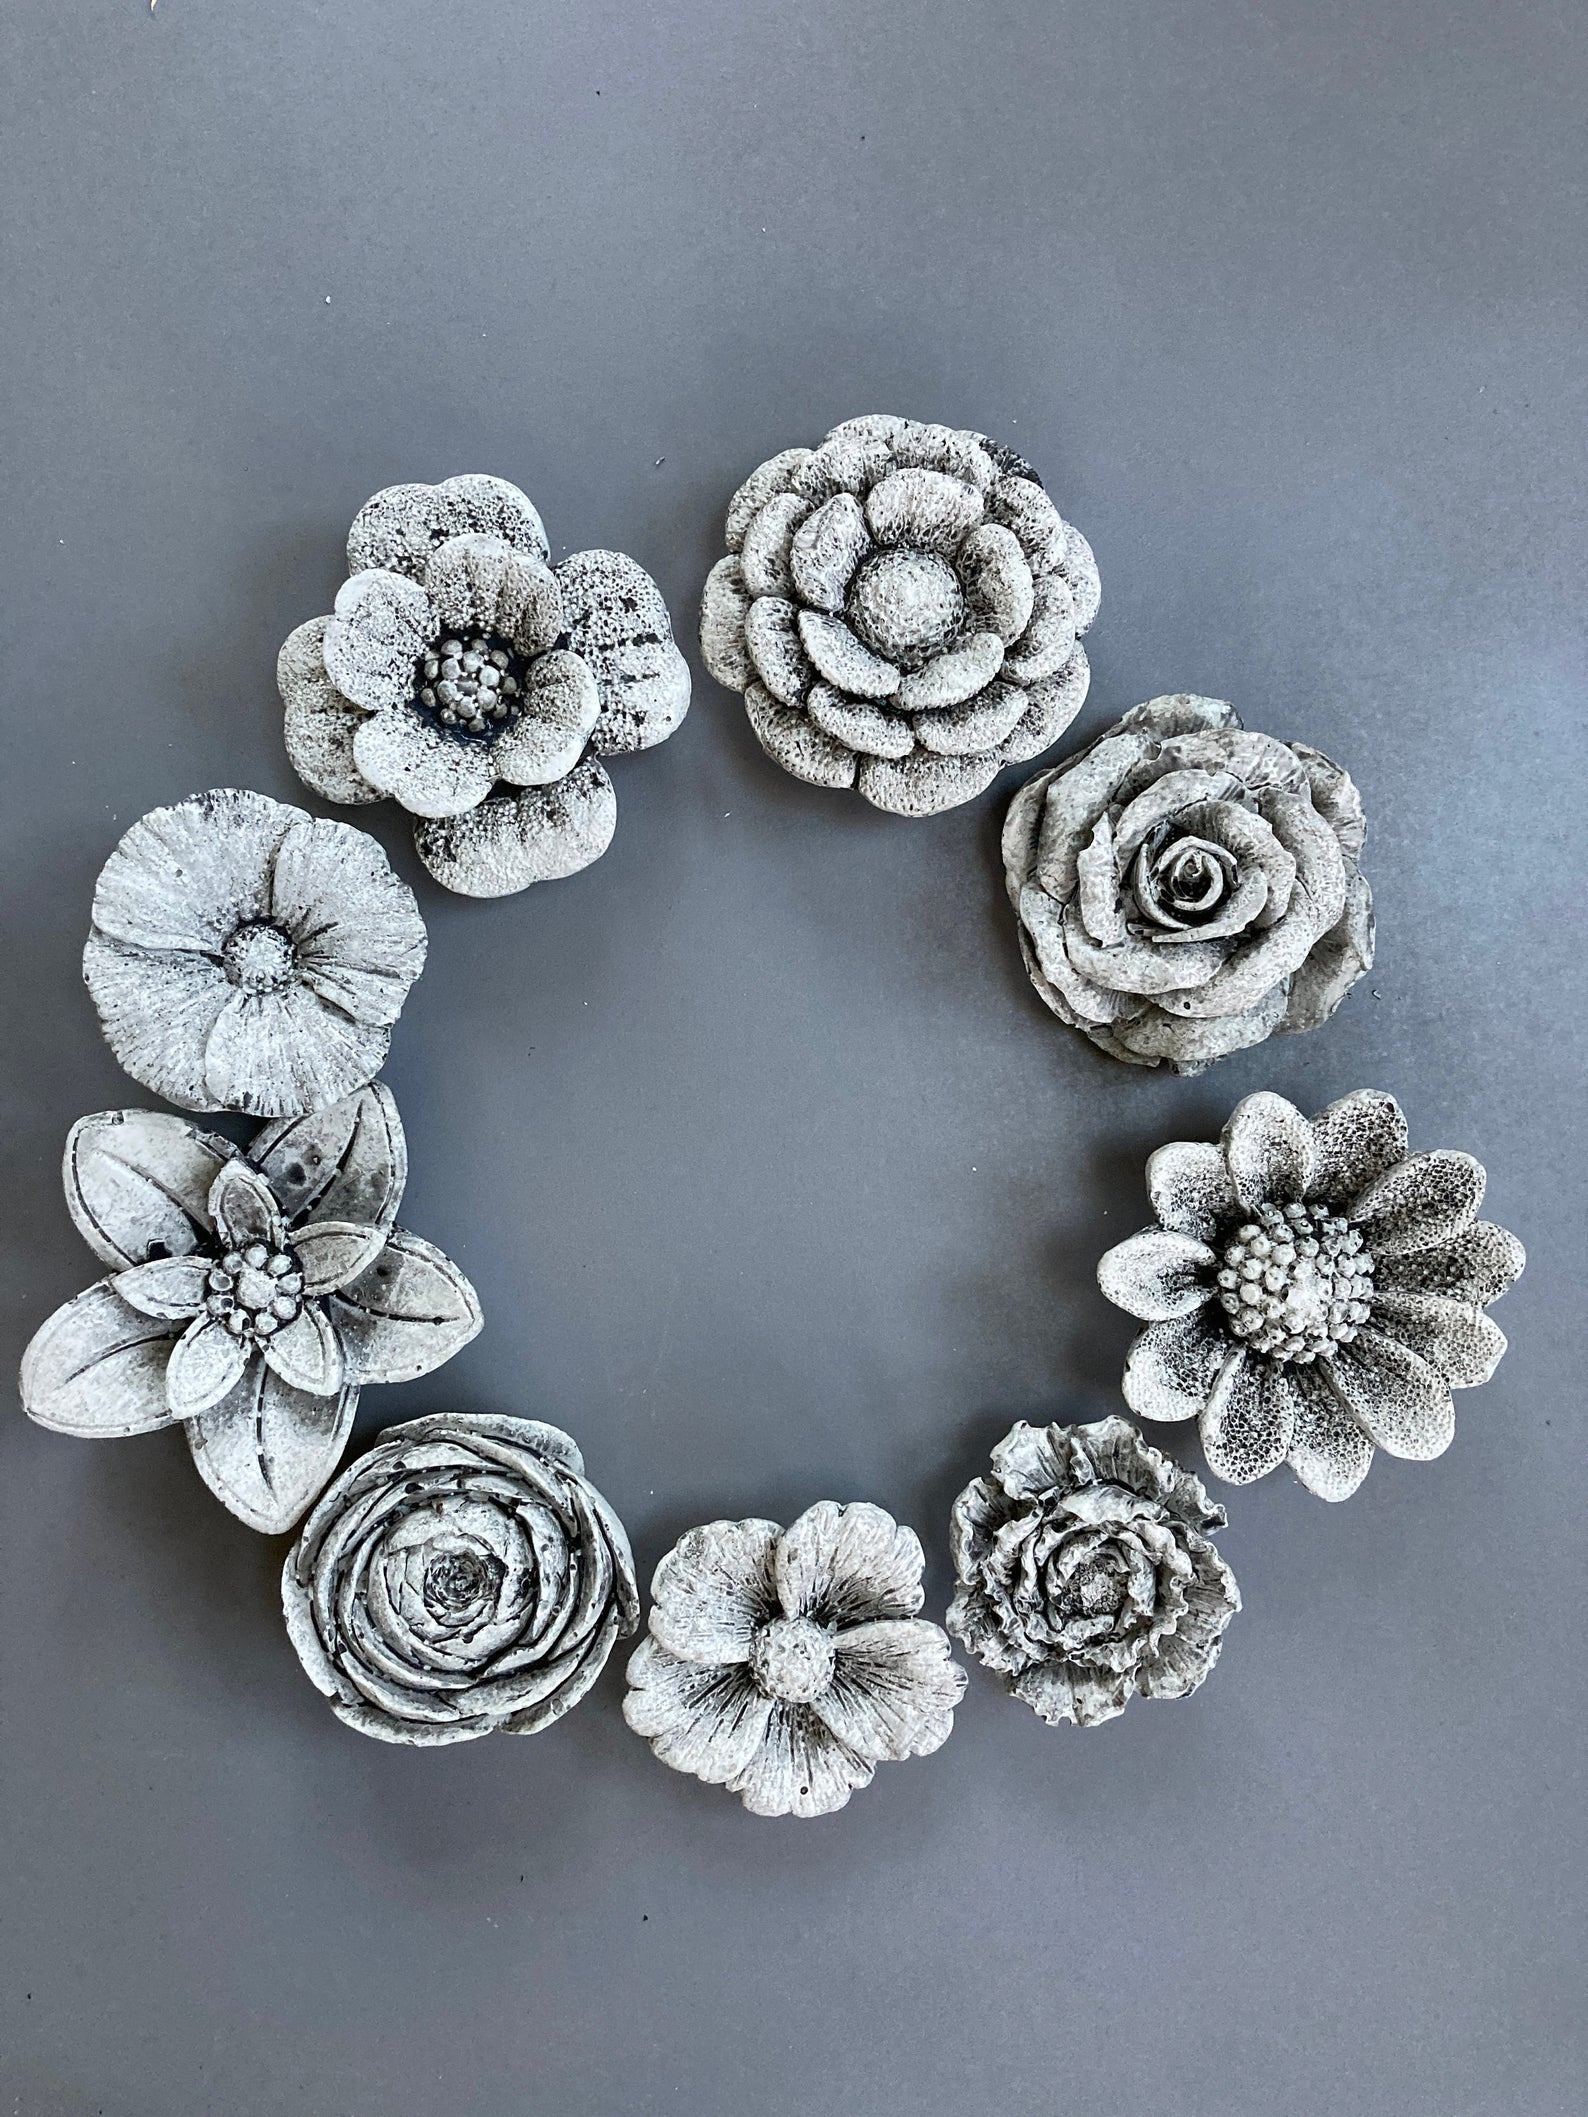 Handmade concrete flowers wall hanging